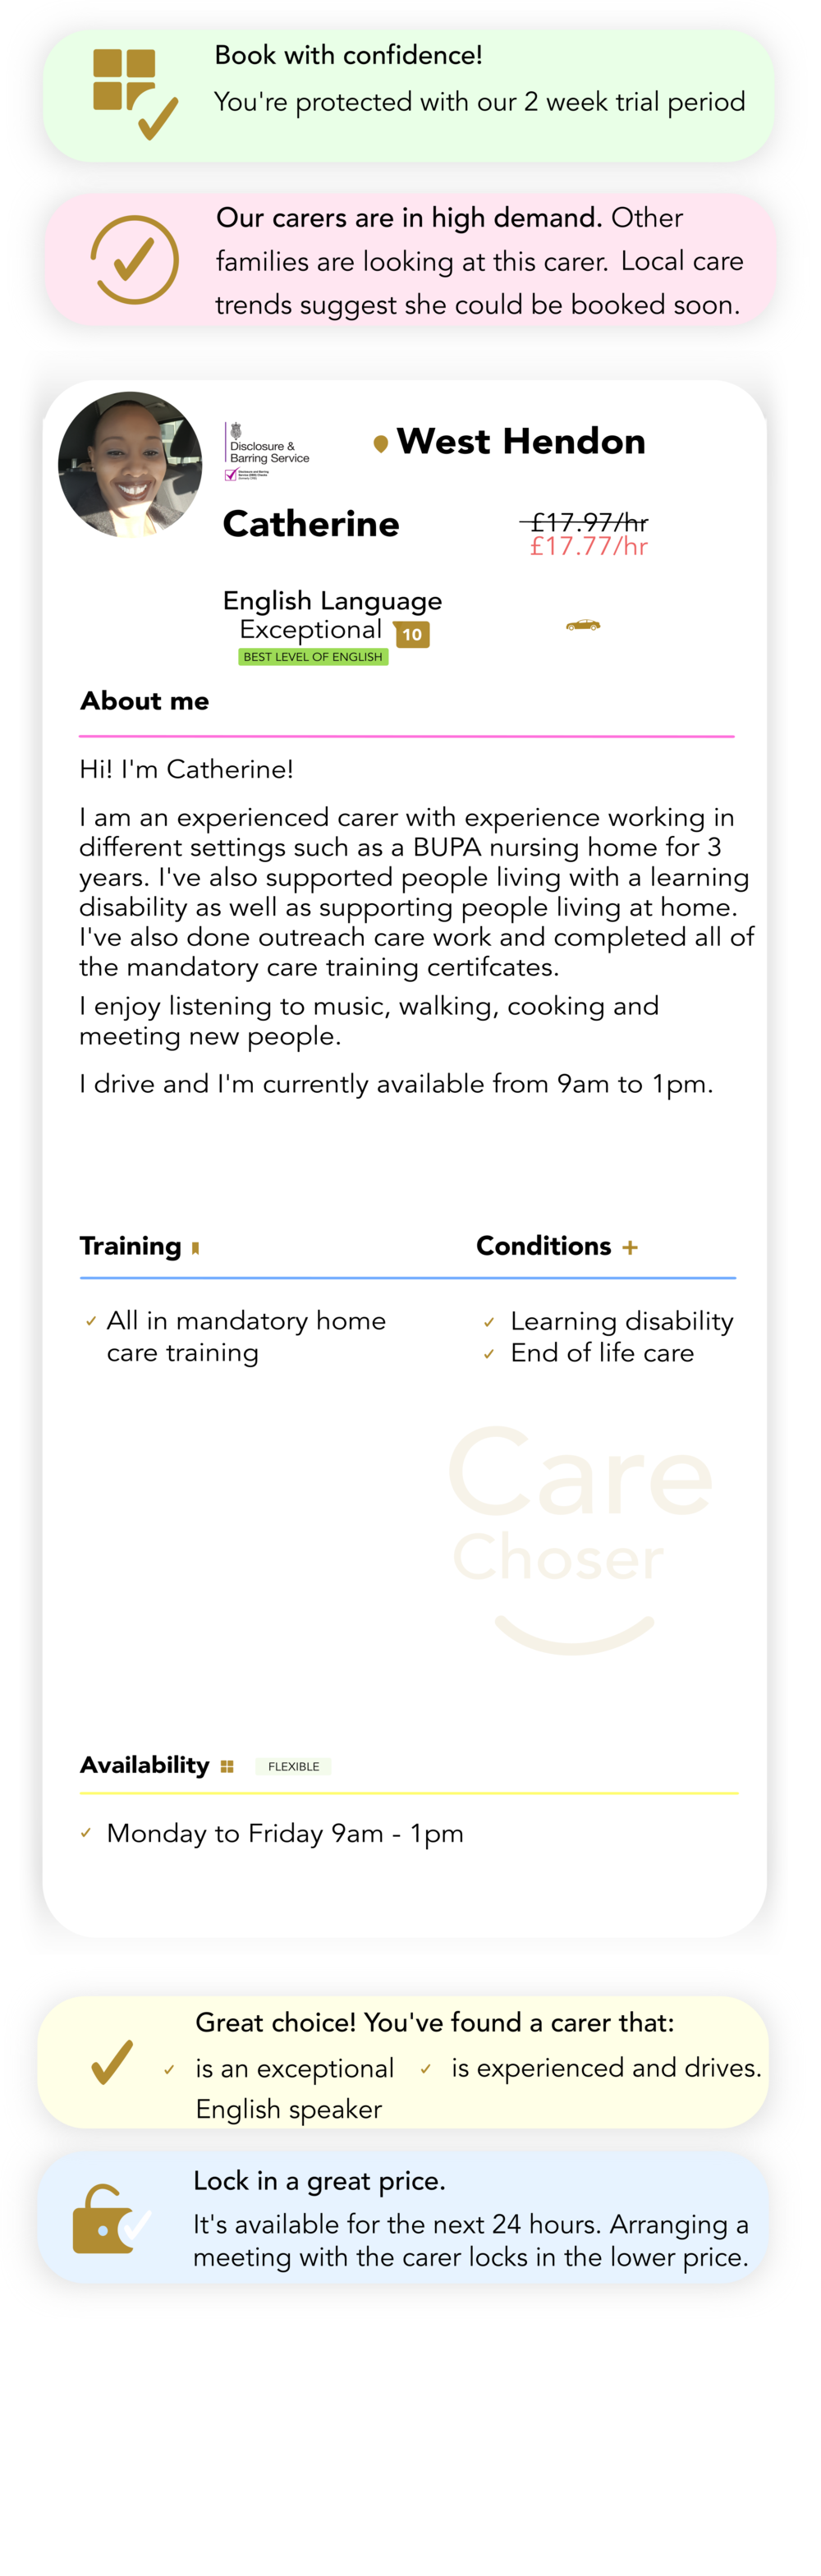 Catherine - home care in Hendon.png